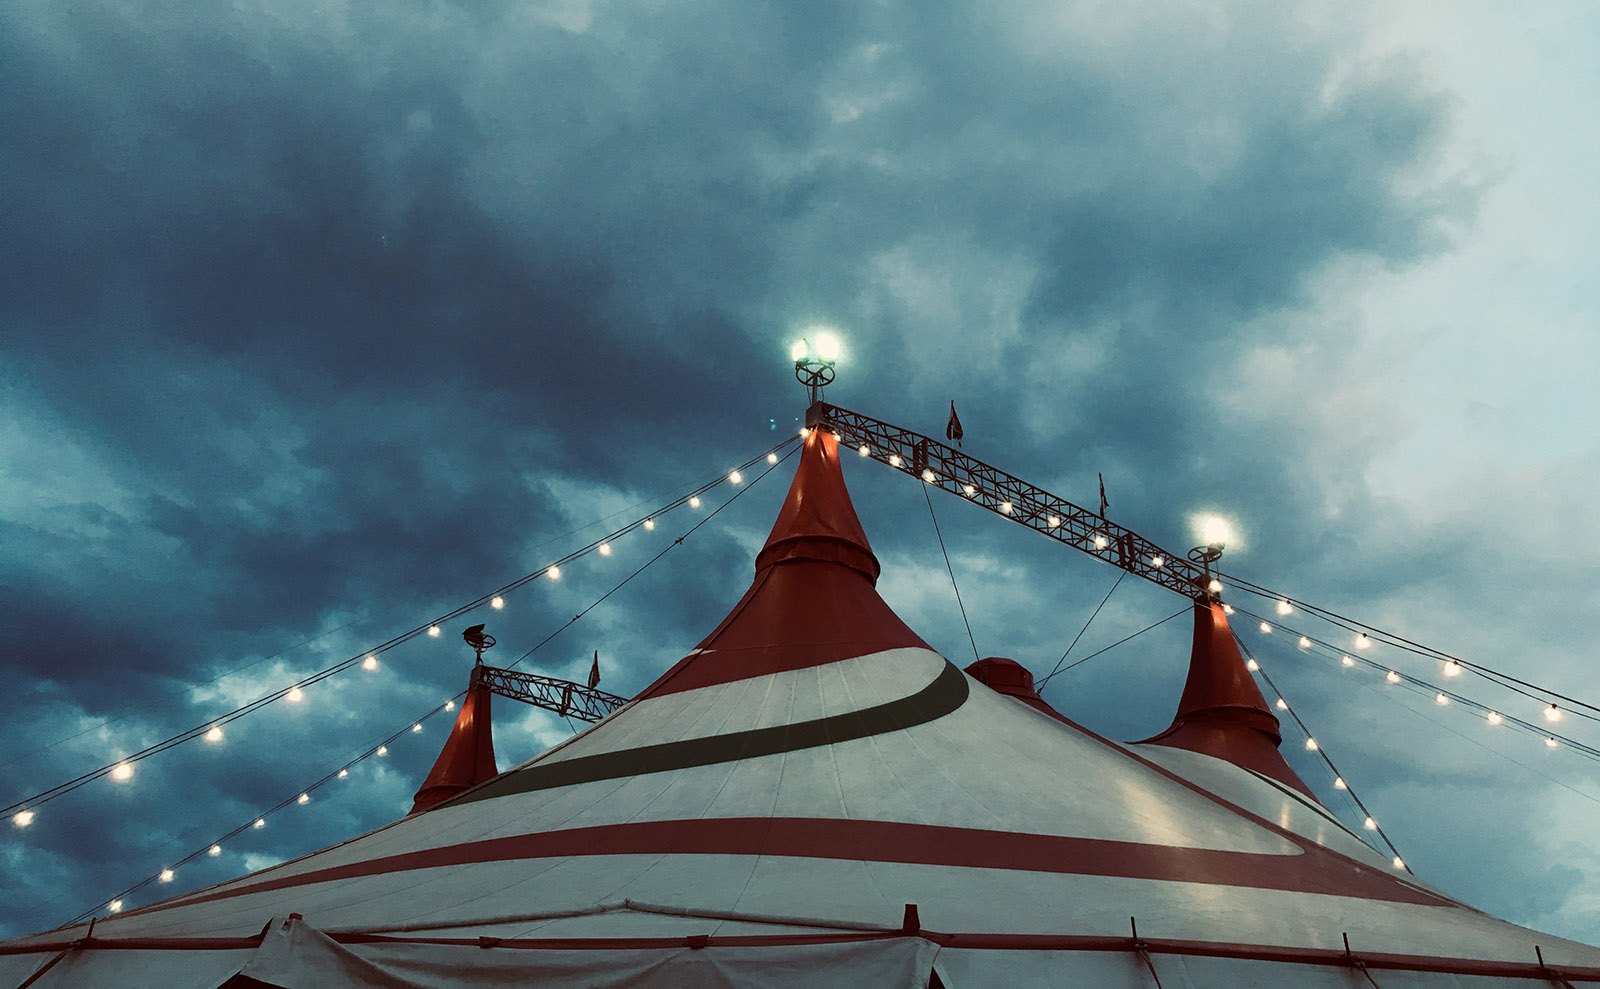 stormy night sky with a striped circus tent.